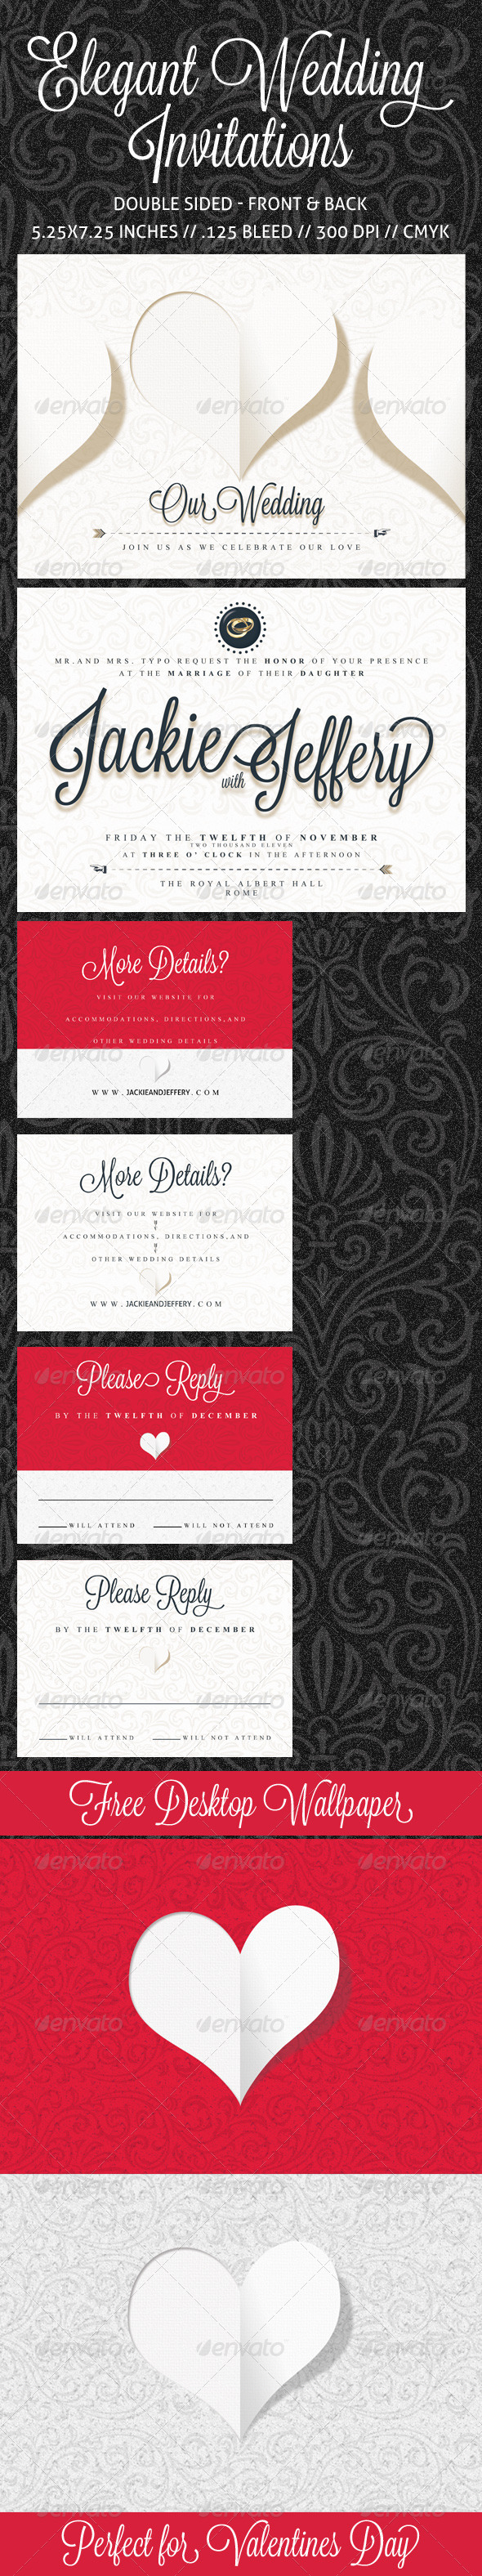 GraphicRiver Elegant Wedding Invitation RSVP and Info Card 1150570